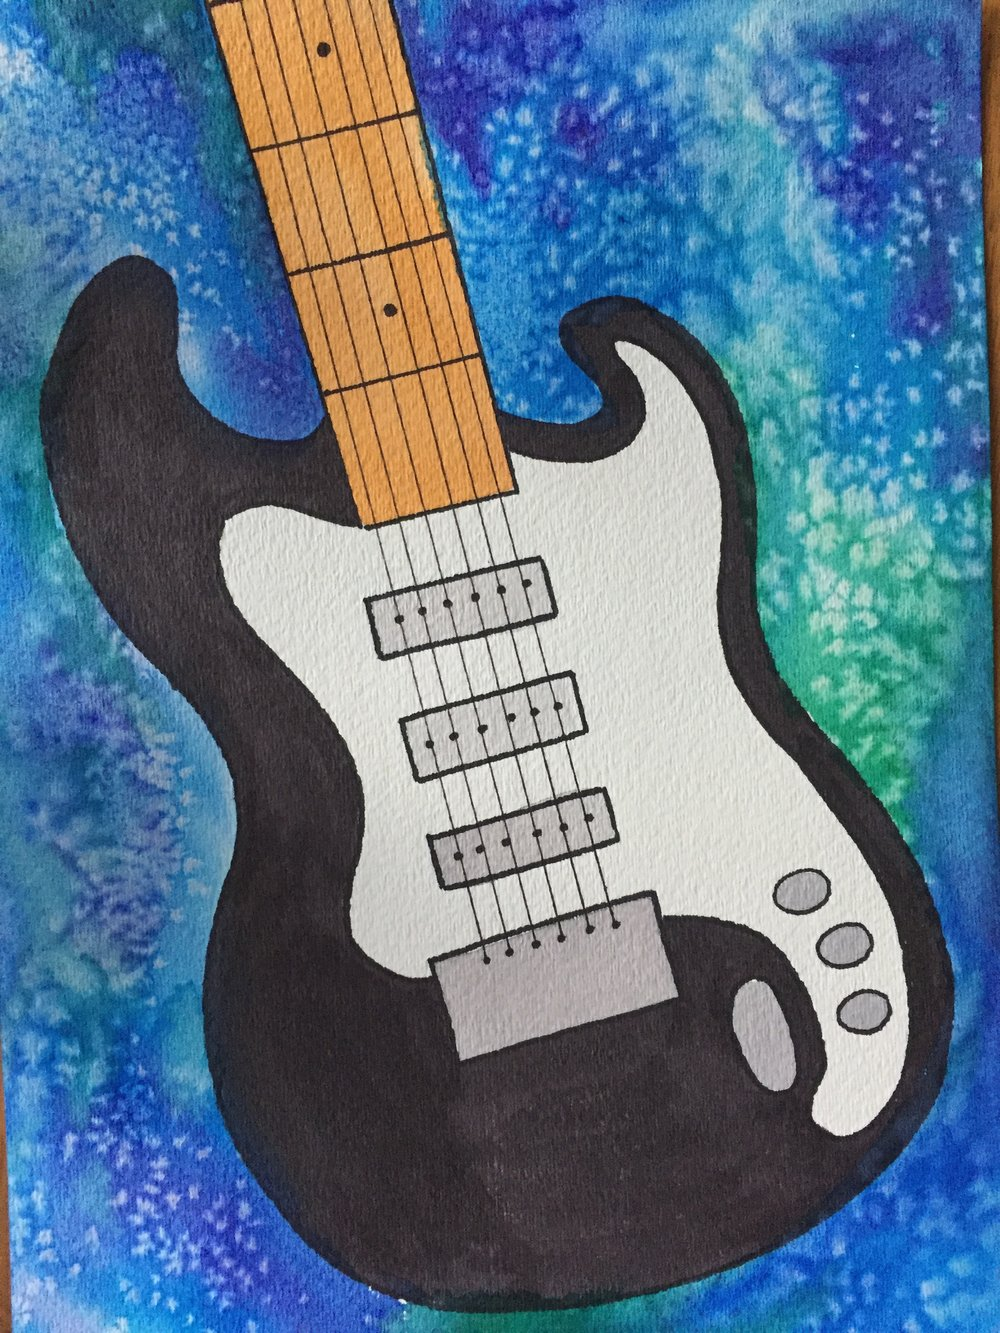 watercolor guitar.JPG